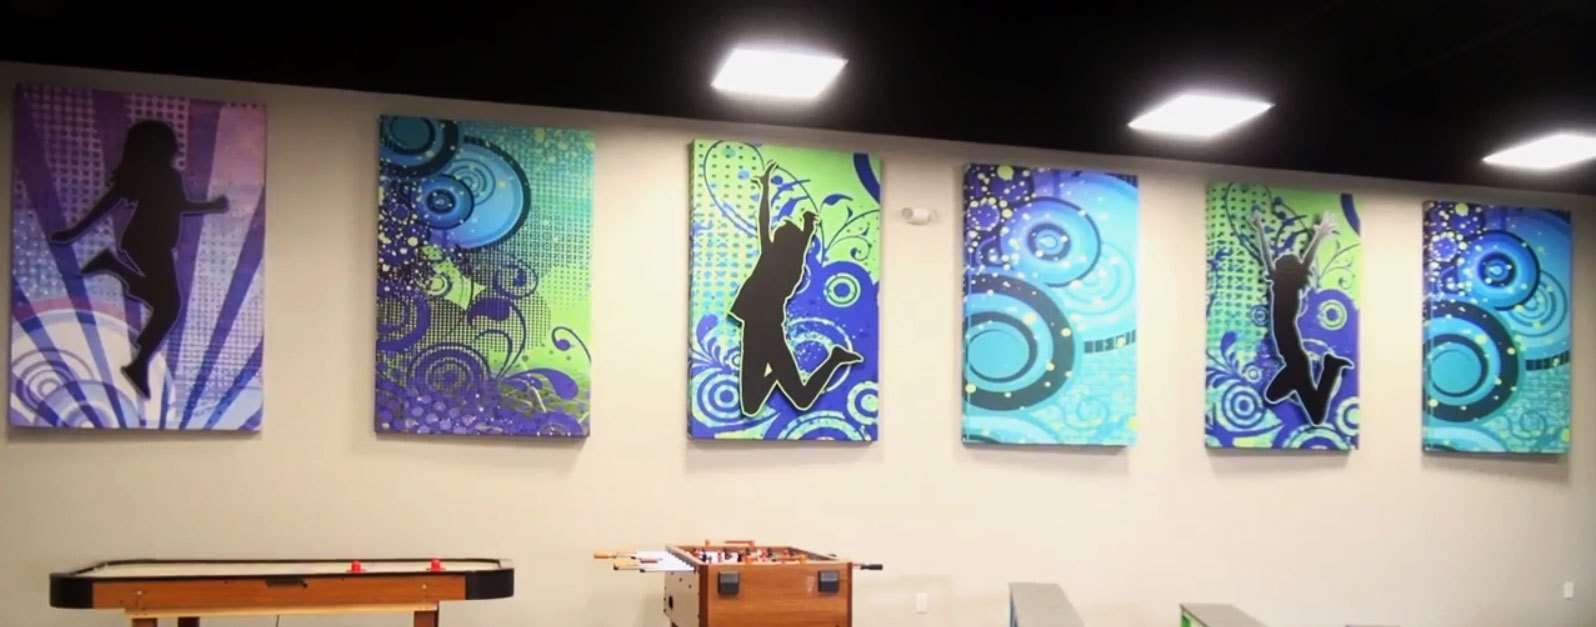 Edgy Colorful Youth Themed Sound Panels